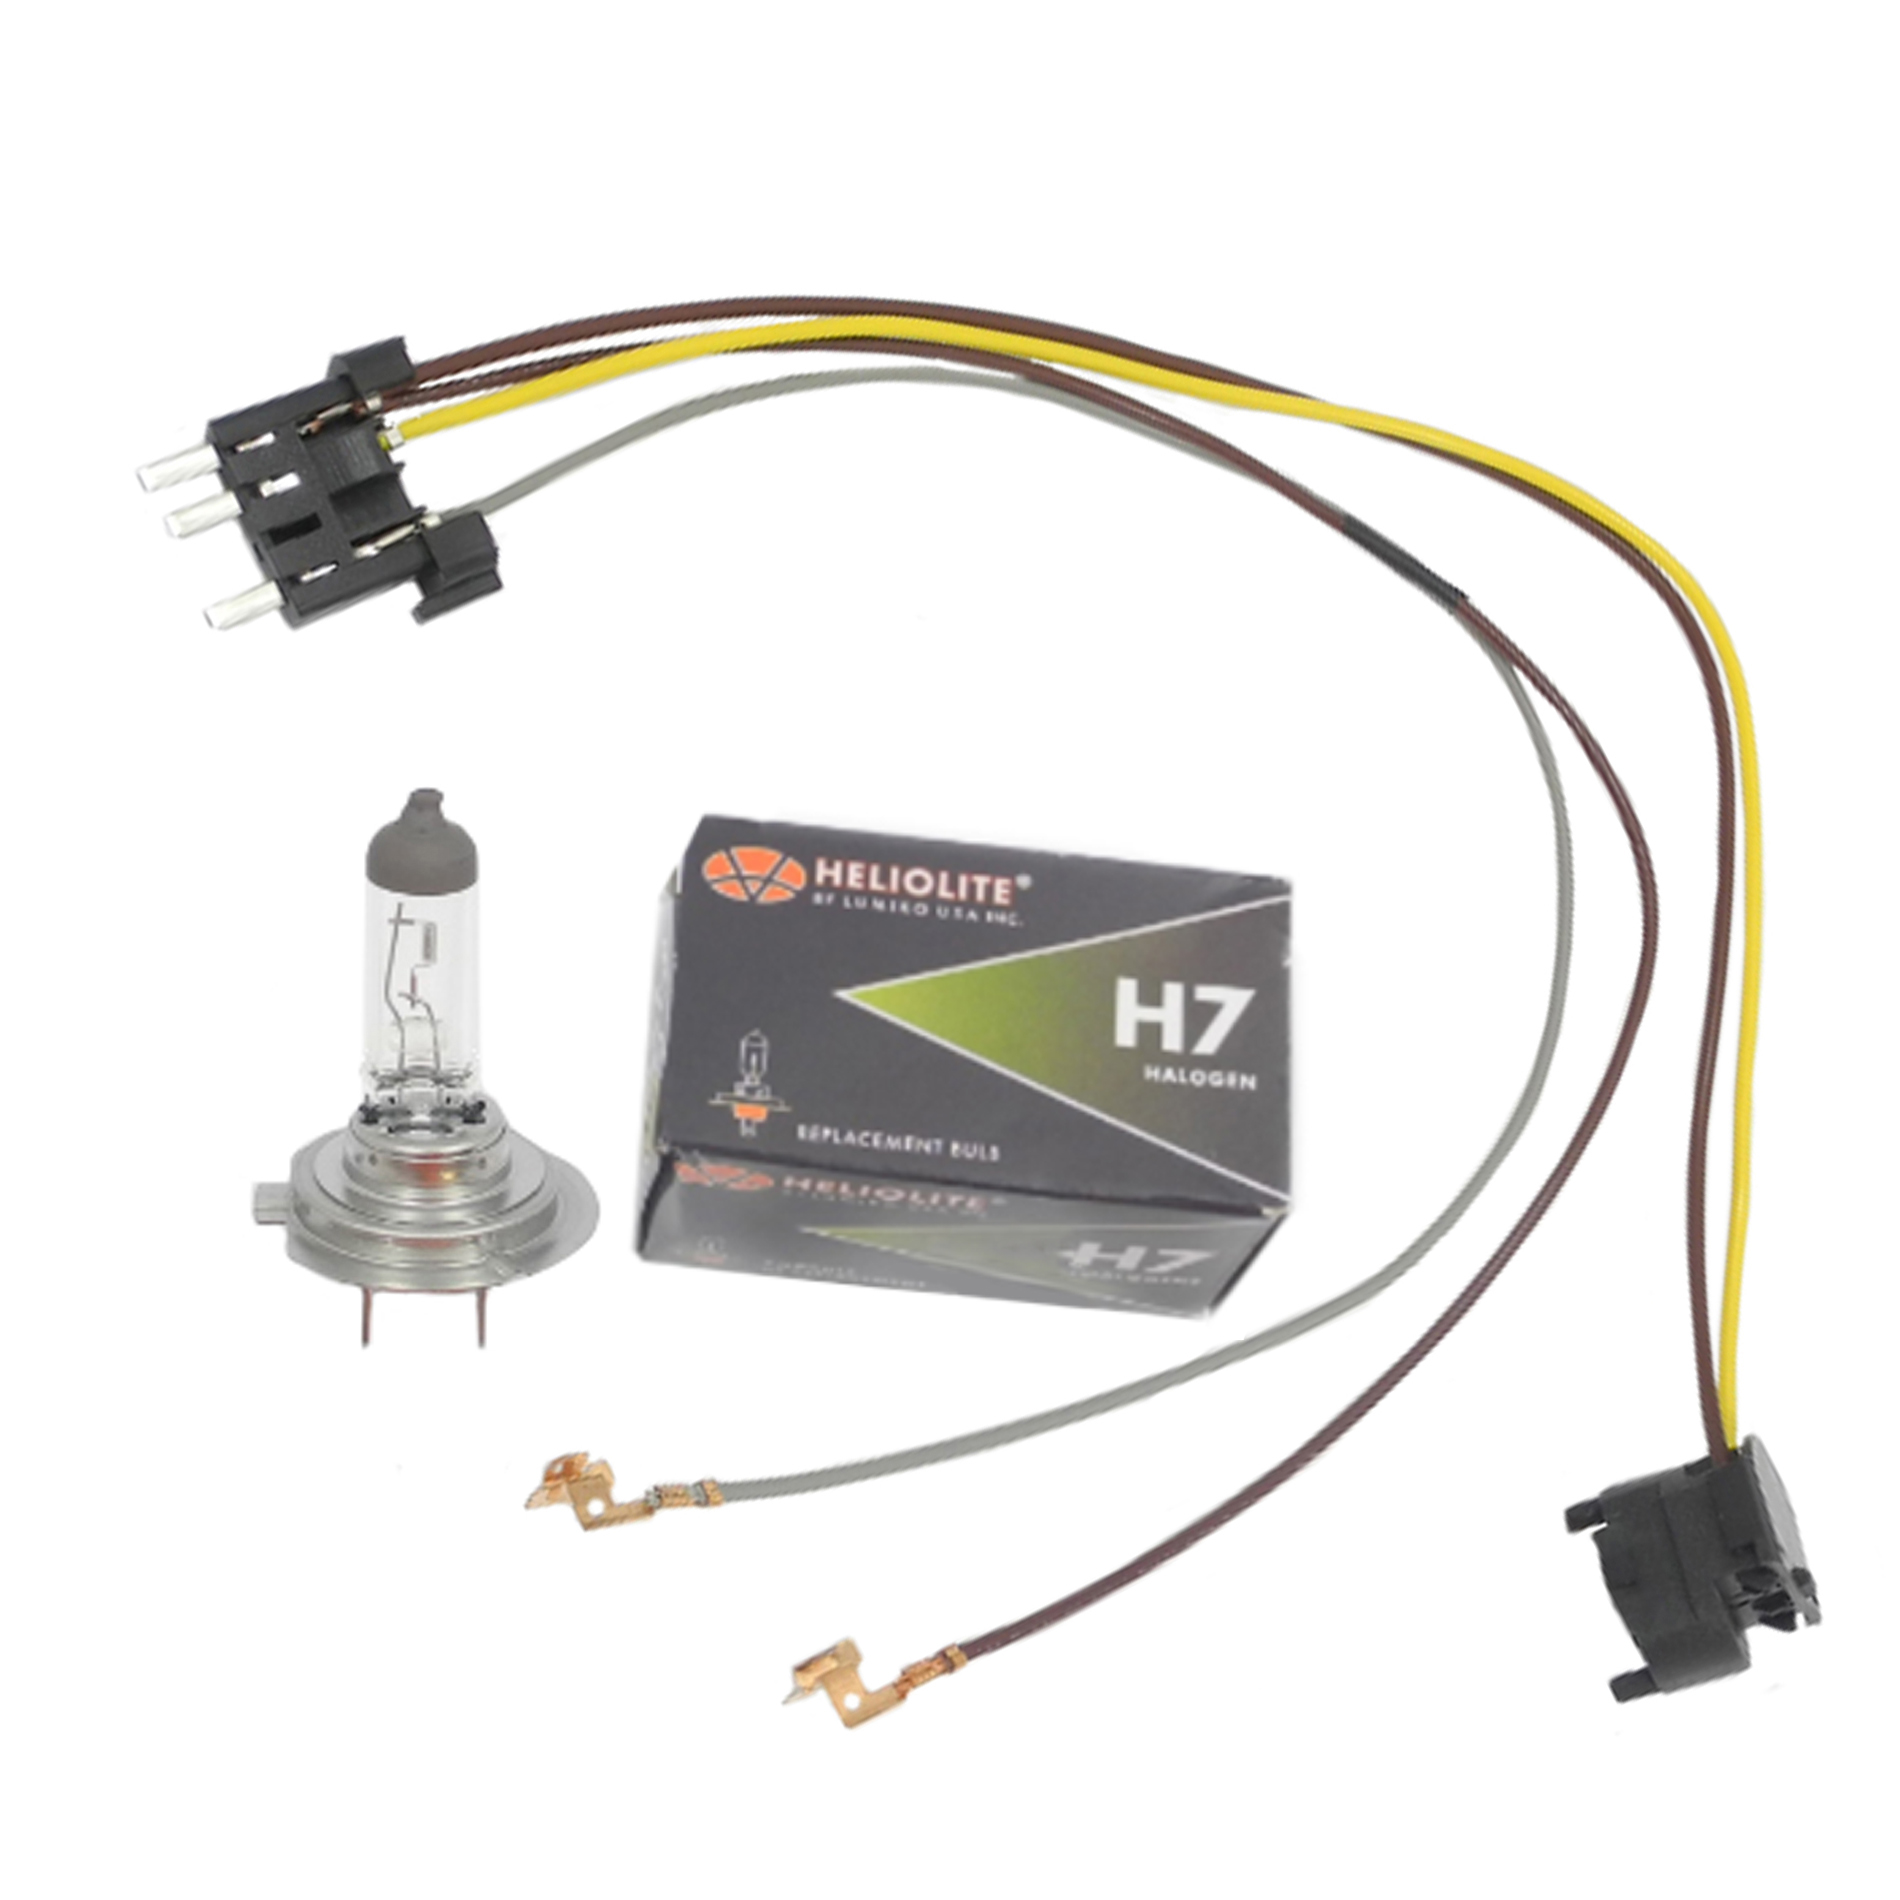 hight resolution of left right headlight wiring harness u0026 h7 55w headlight bulb for mix details about left